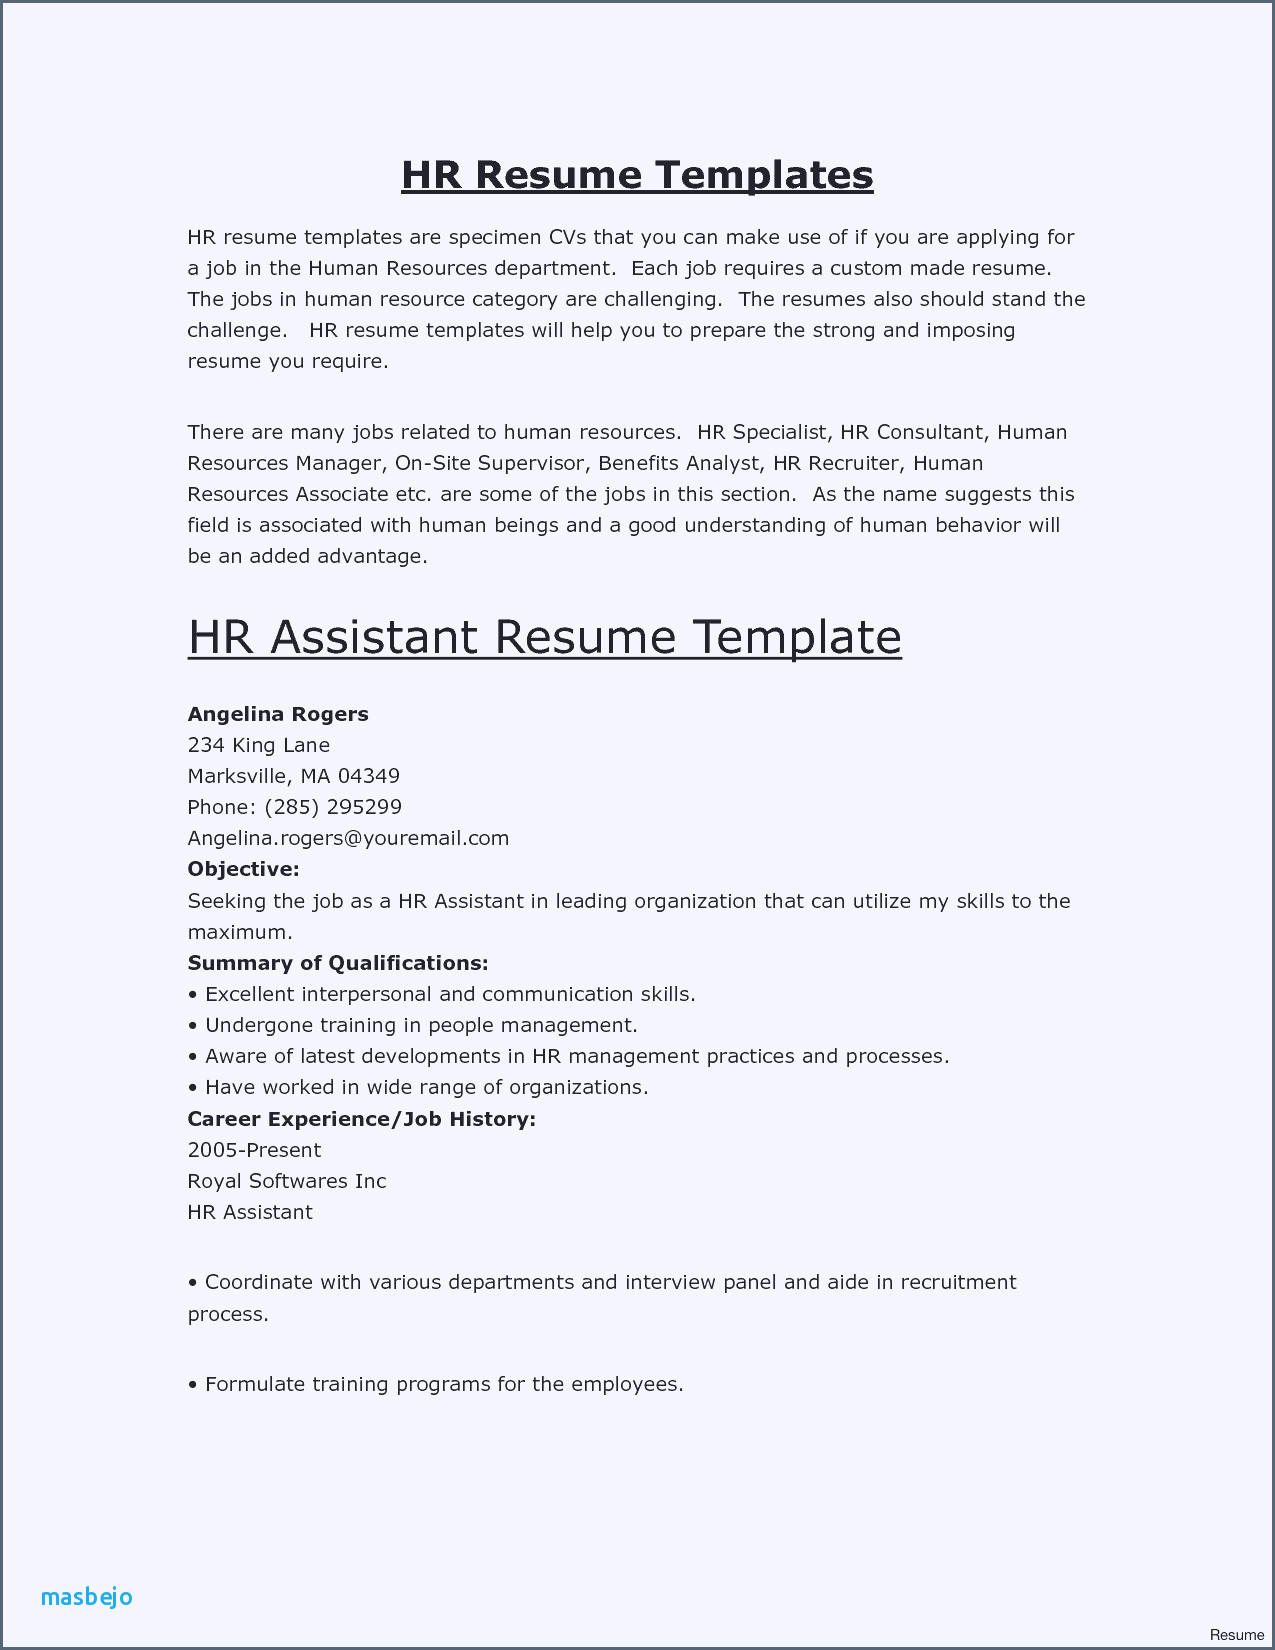 resume for hair stylist free templates nice with images church ministry orthopedic Resume Free Hair Stylist Resume Templates Download